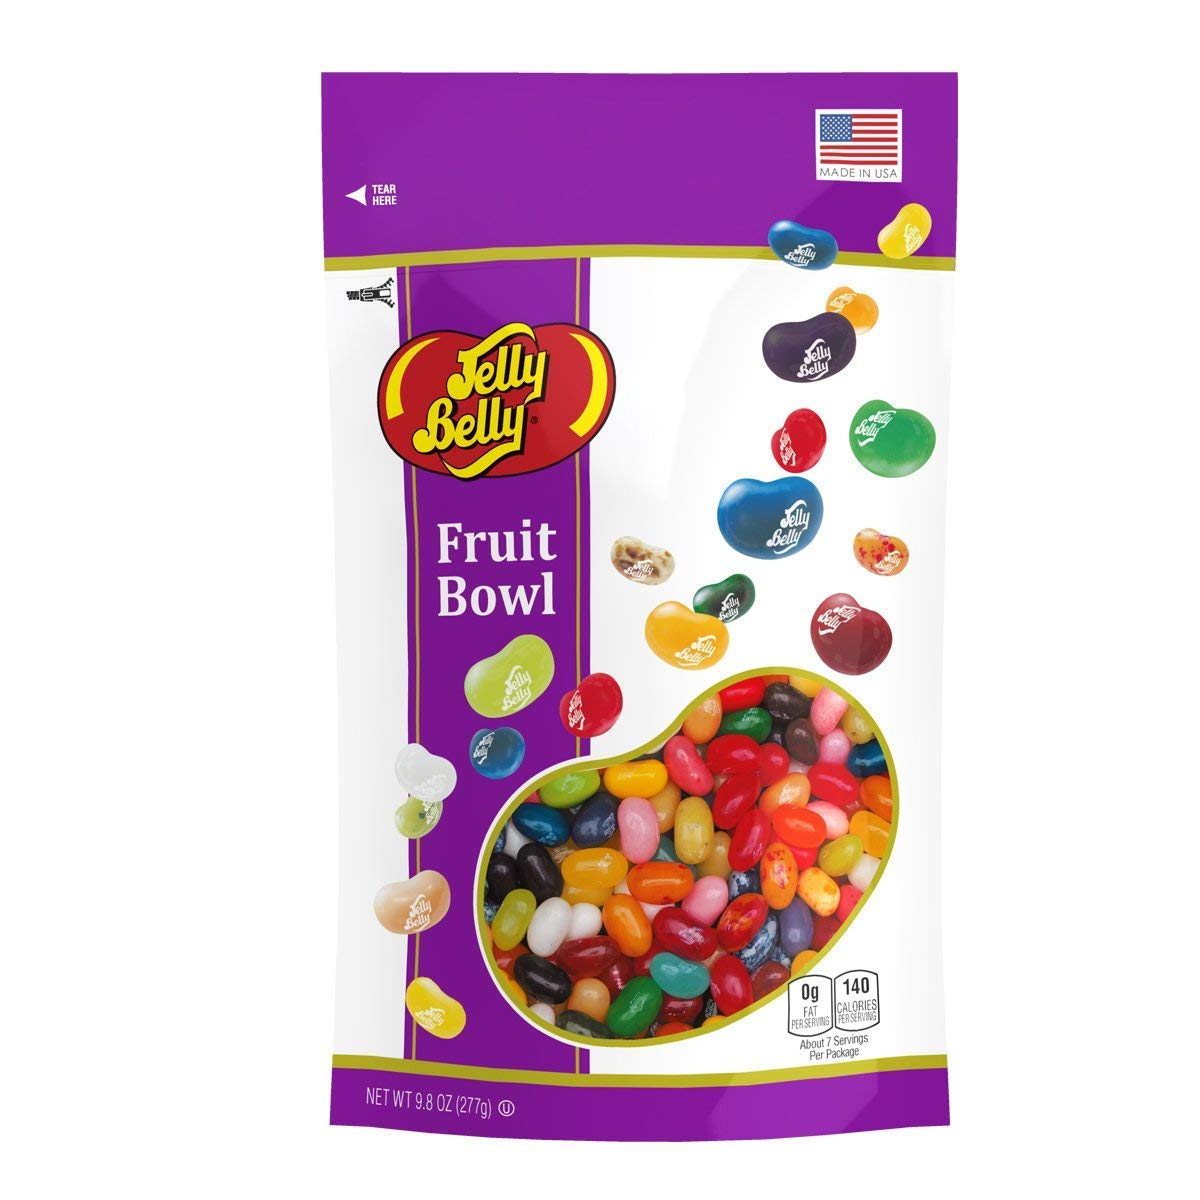 Jelly Belly Fruit Bowl Jelly Beans, Assorted Fruit